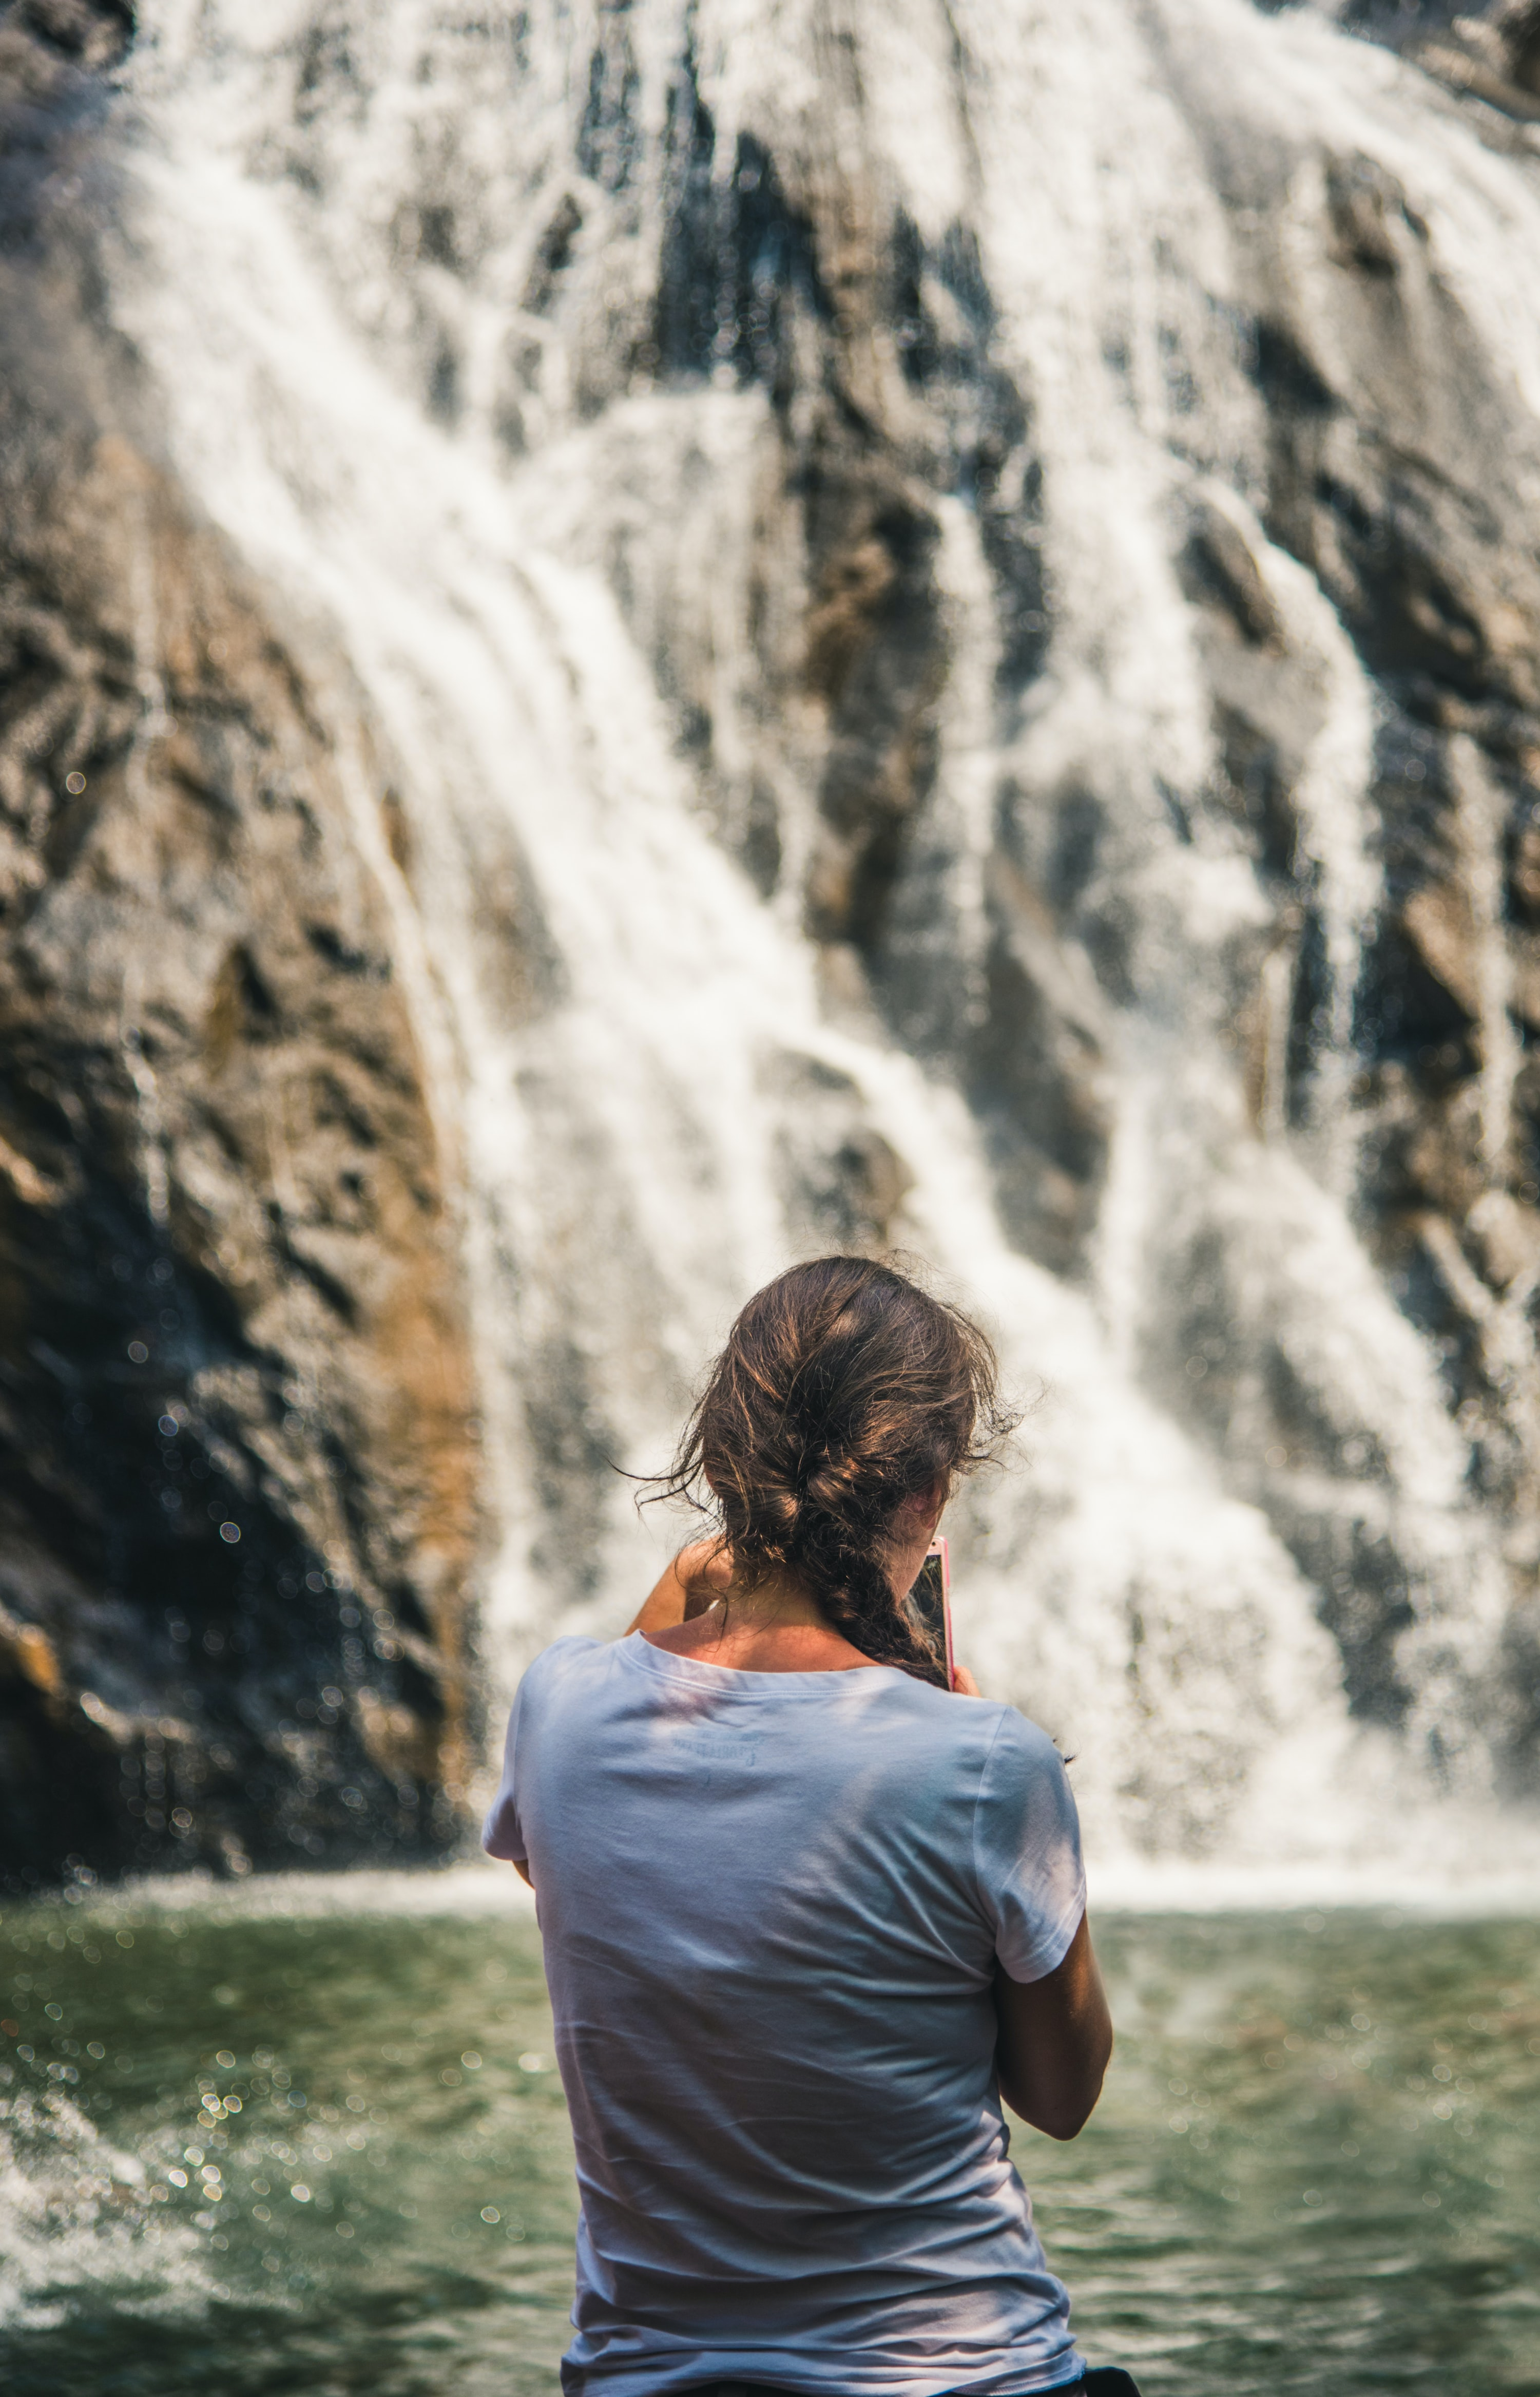 woman standing in front of waterfall